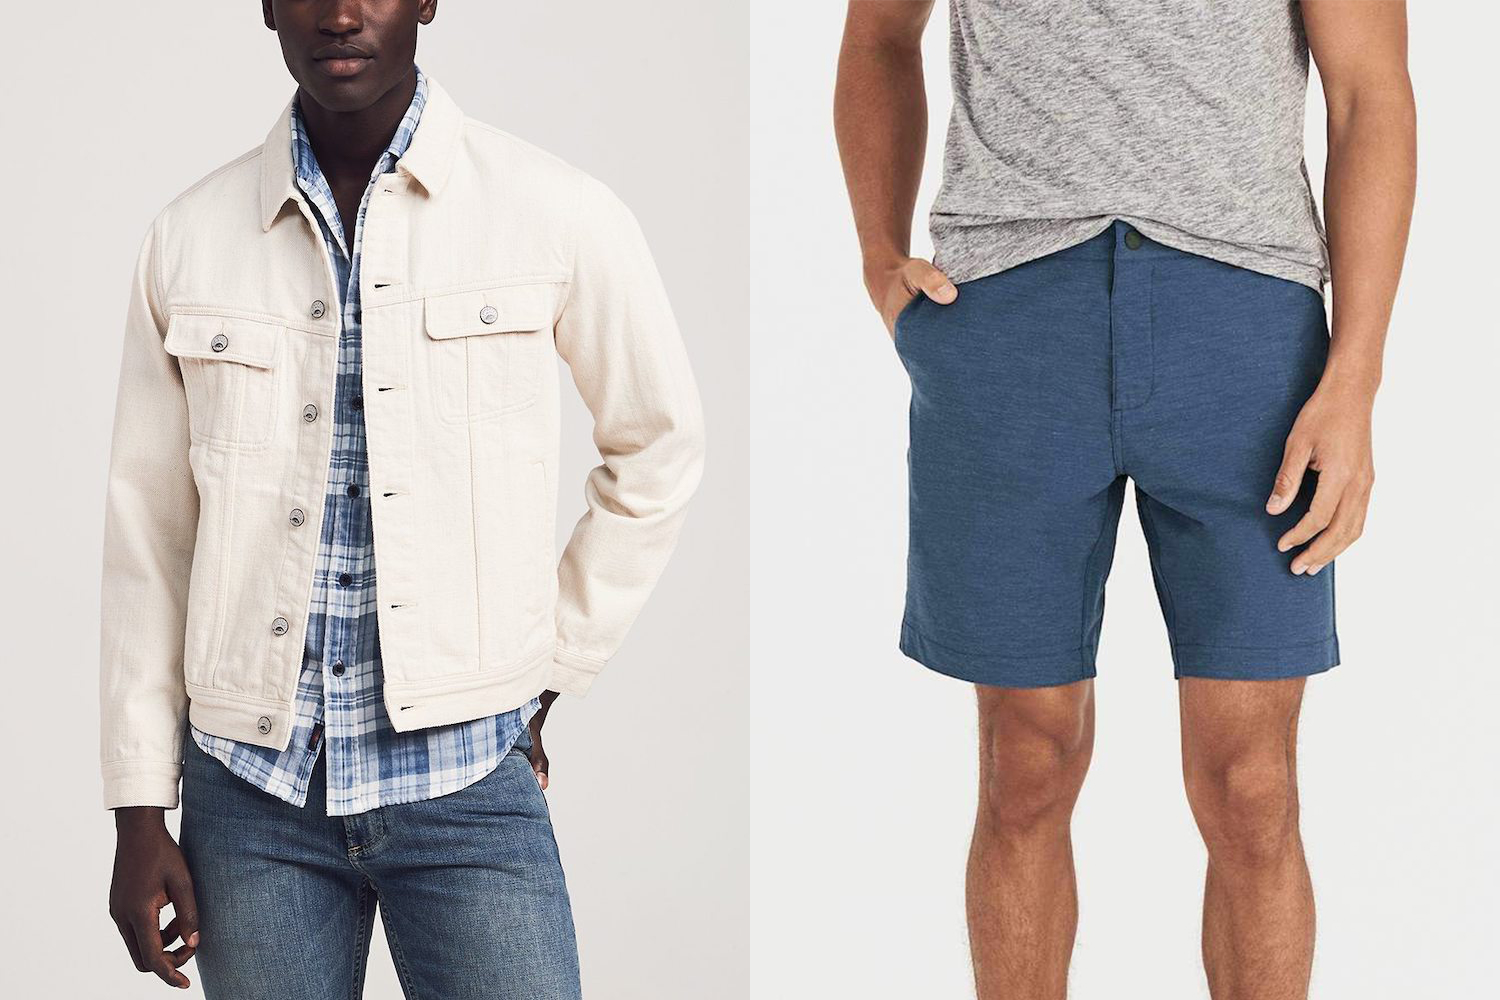 Faherty Storm Rider Jacket and All Day Shorts